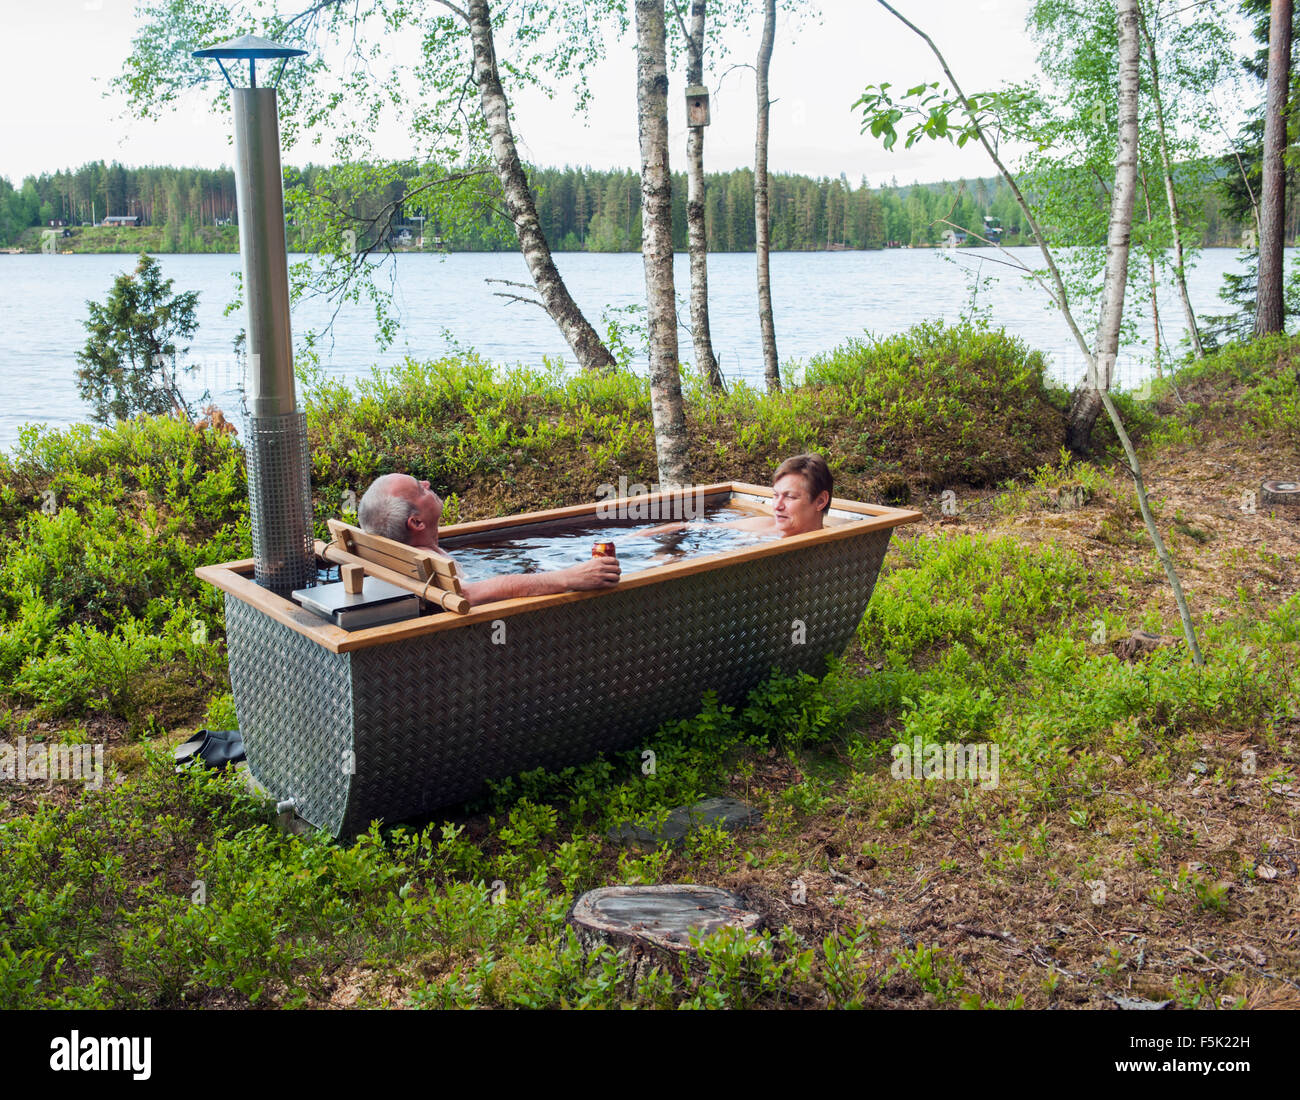 outdoor badewanne stockfoto bild 89543849 alamy. Black Bedroom Furniture Sets. Home Design Ideas